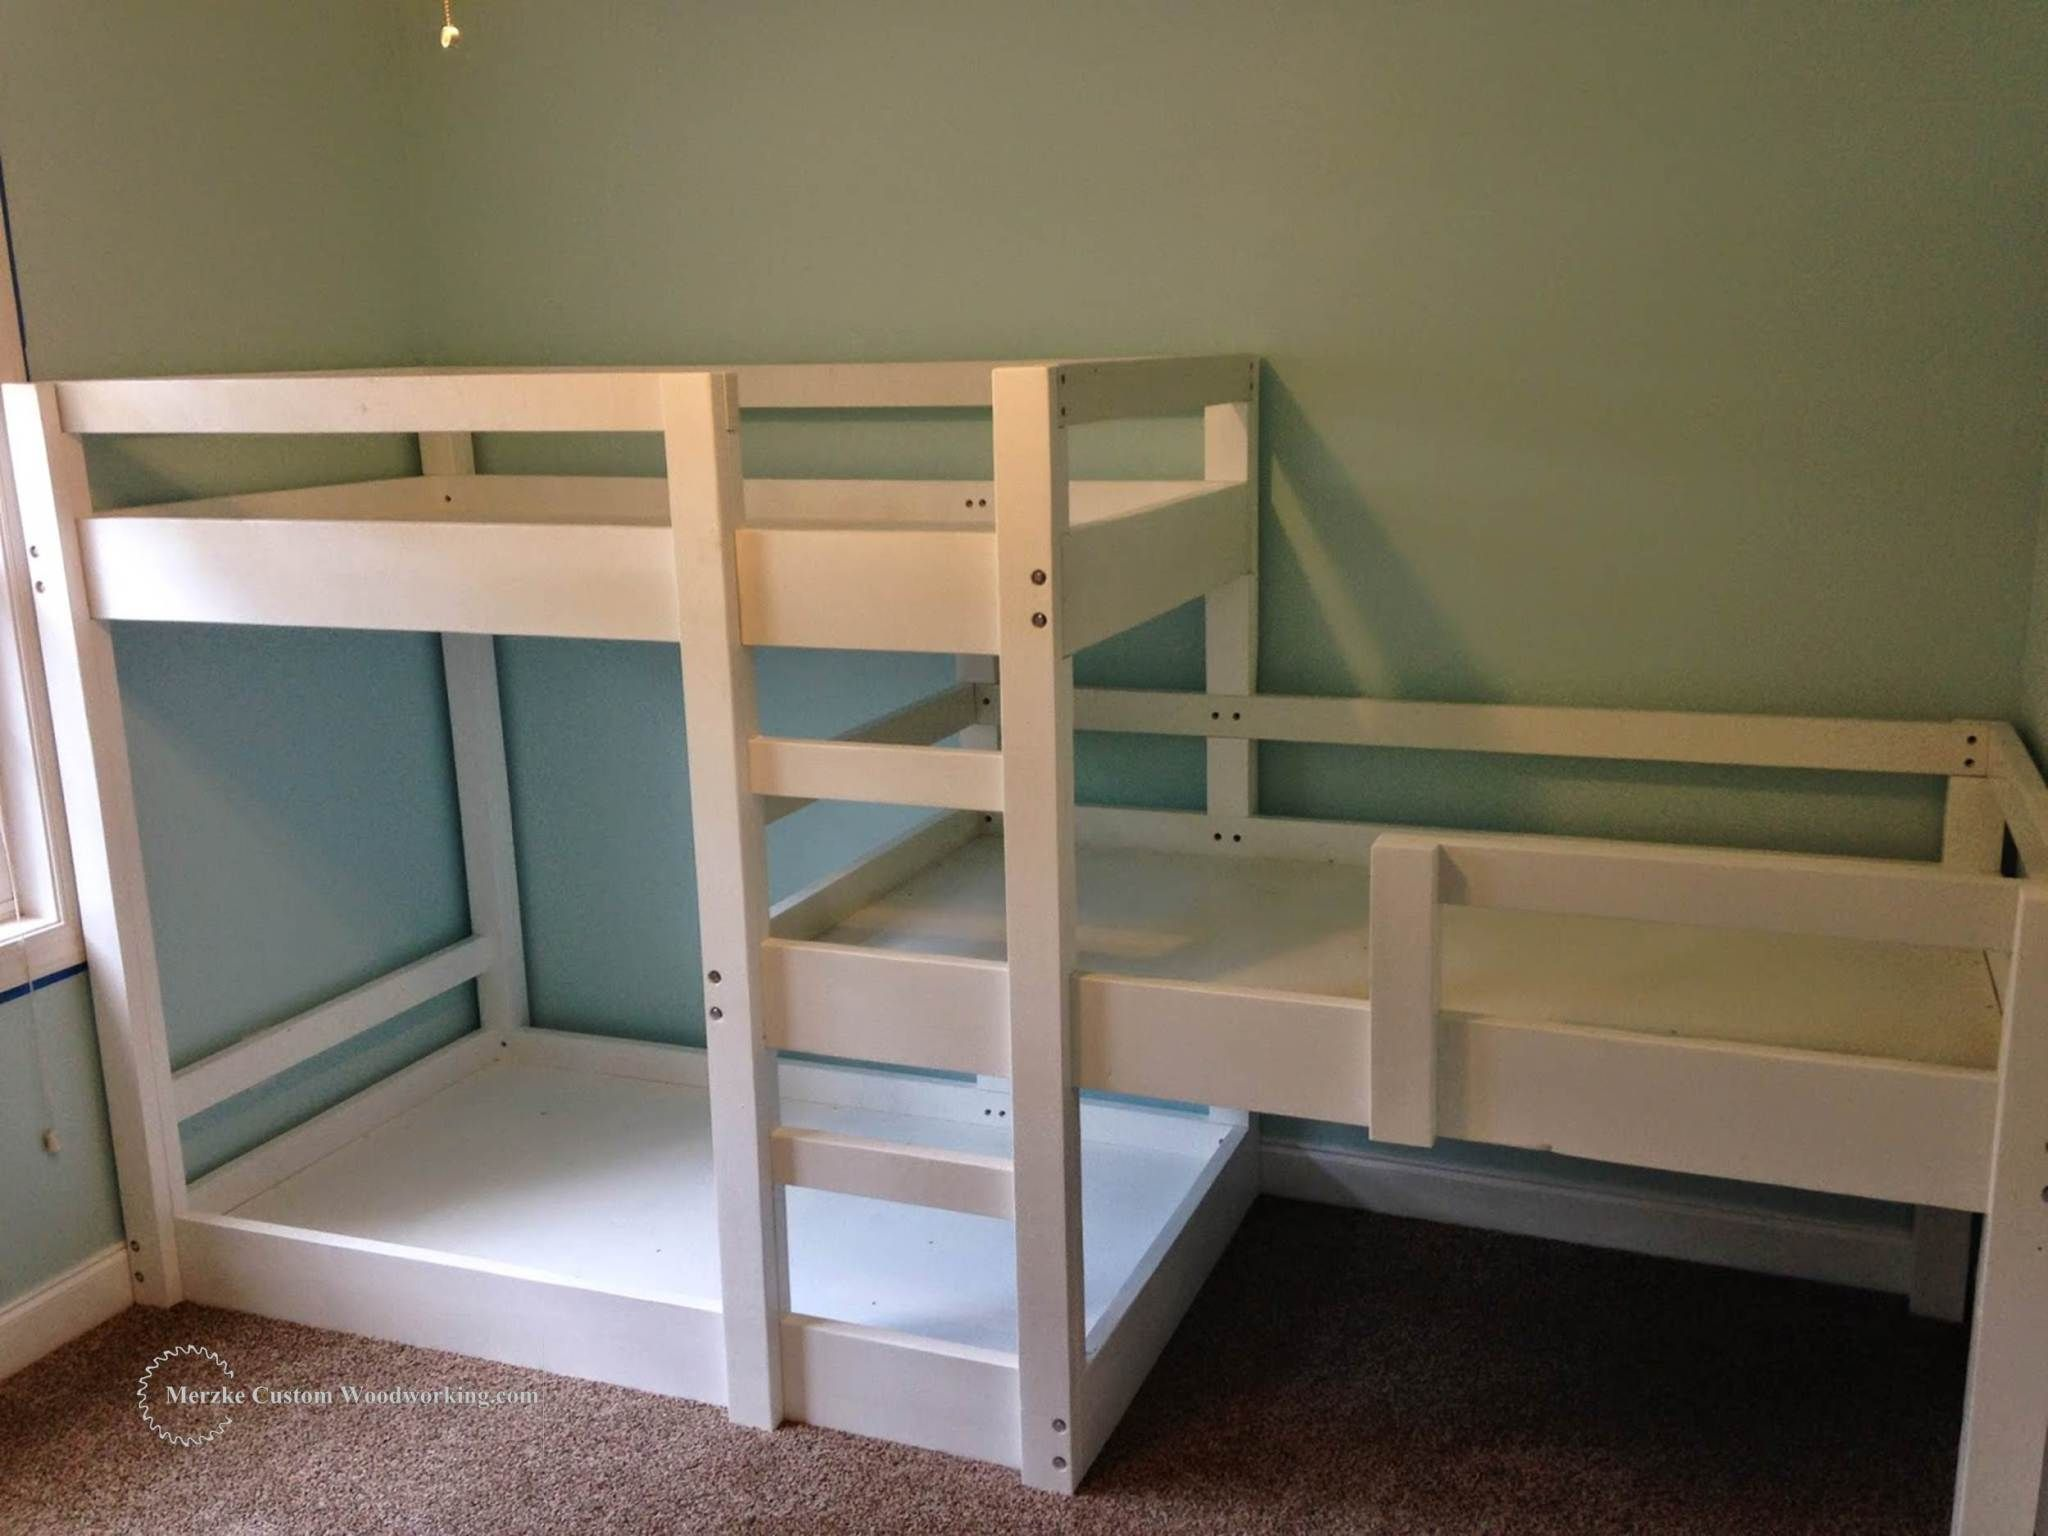 best 25+ bunk bed decor ideas on pinterest | fun bunk beds, bunk